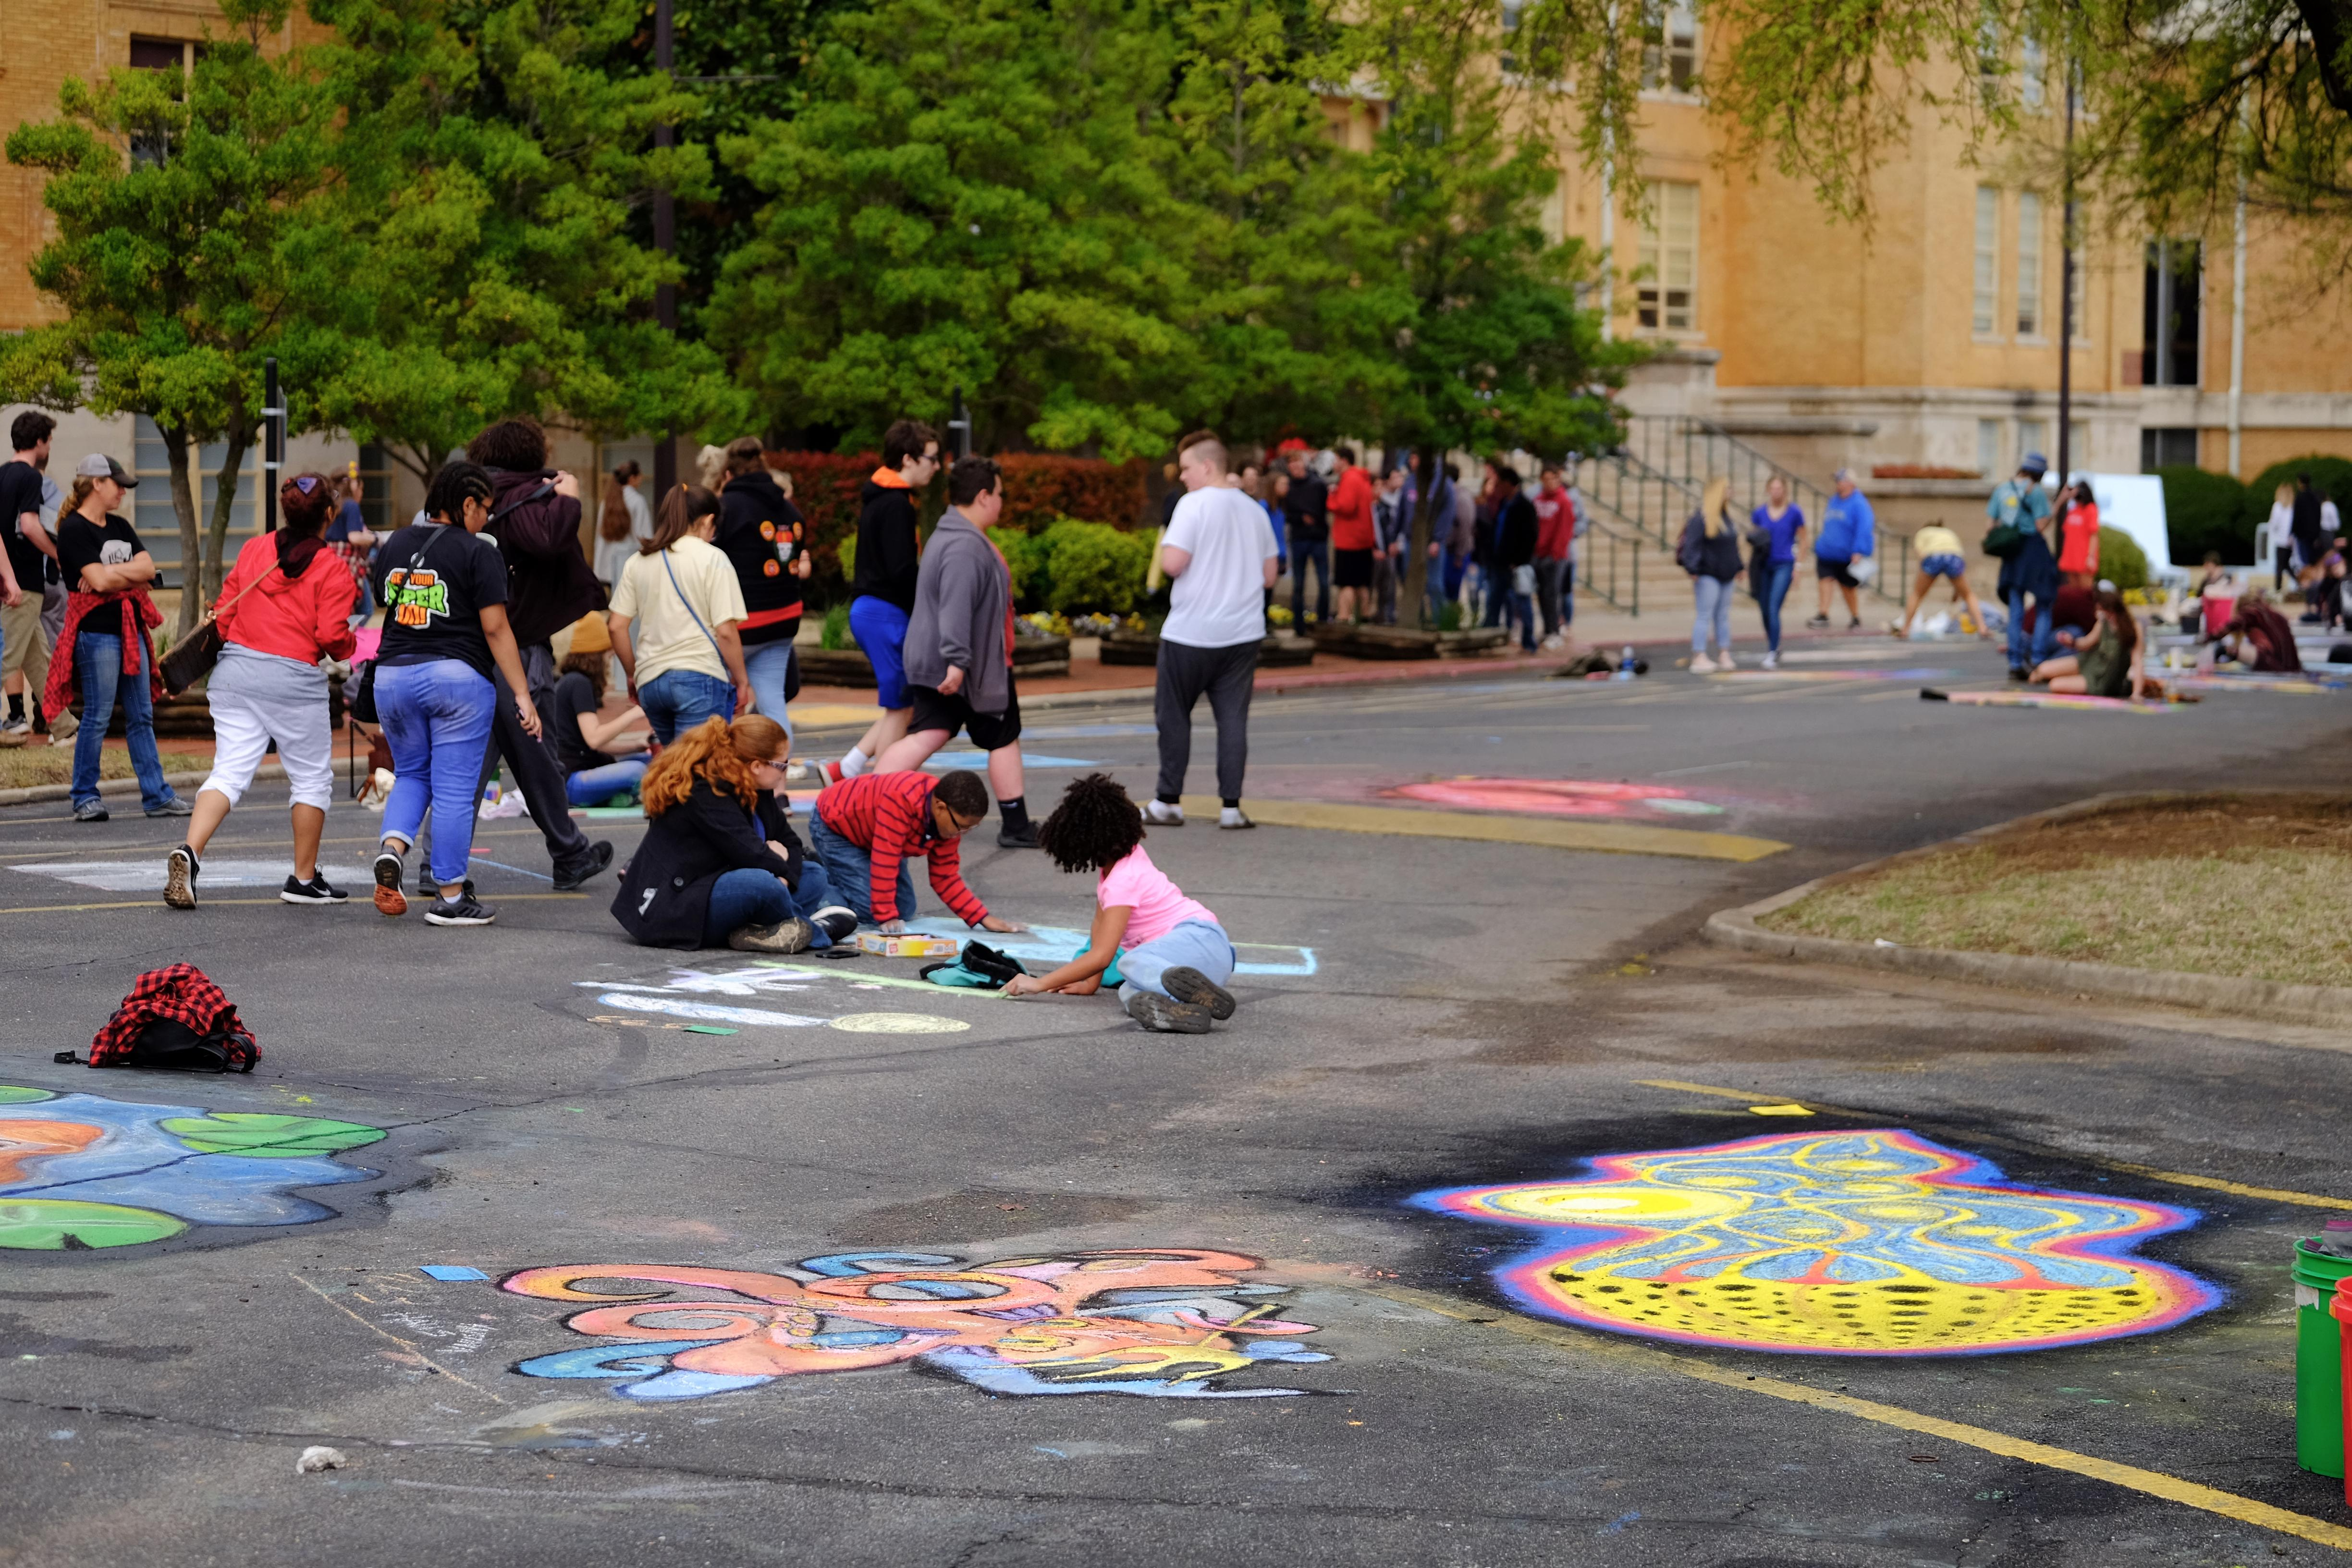 Crowd of people walking by and drawing with chalk